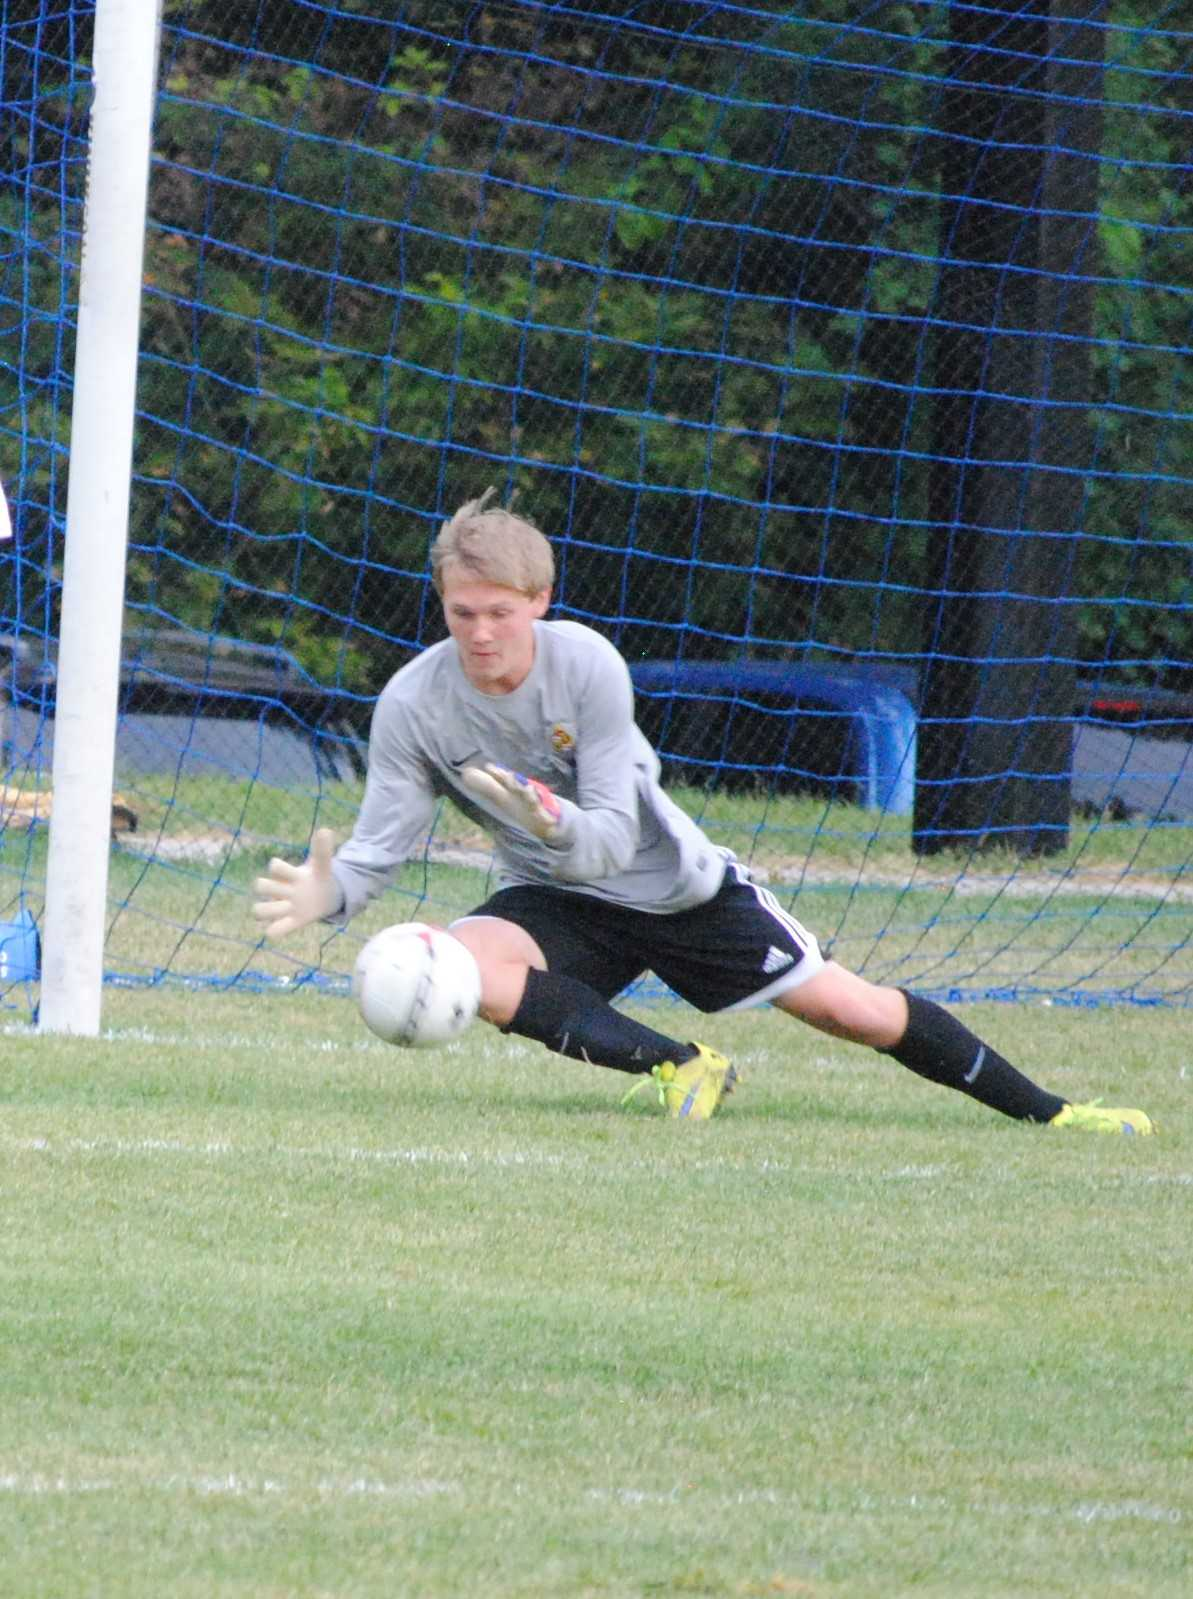 Senior Tyler Brown dives for a save during a 2015 varsity boys soccer game. Brown has suffered seven concussions and has had to stop playing soccer as a result.